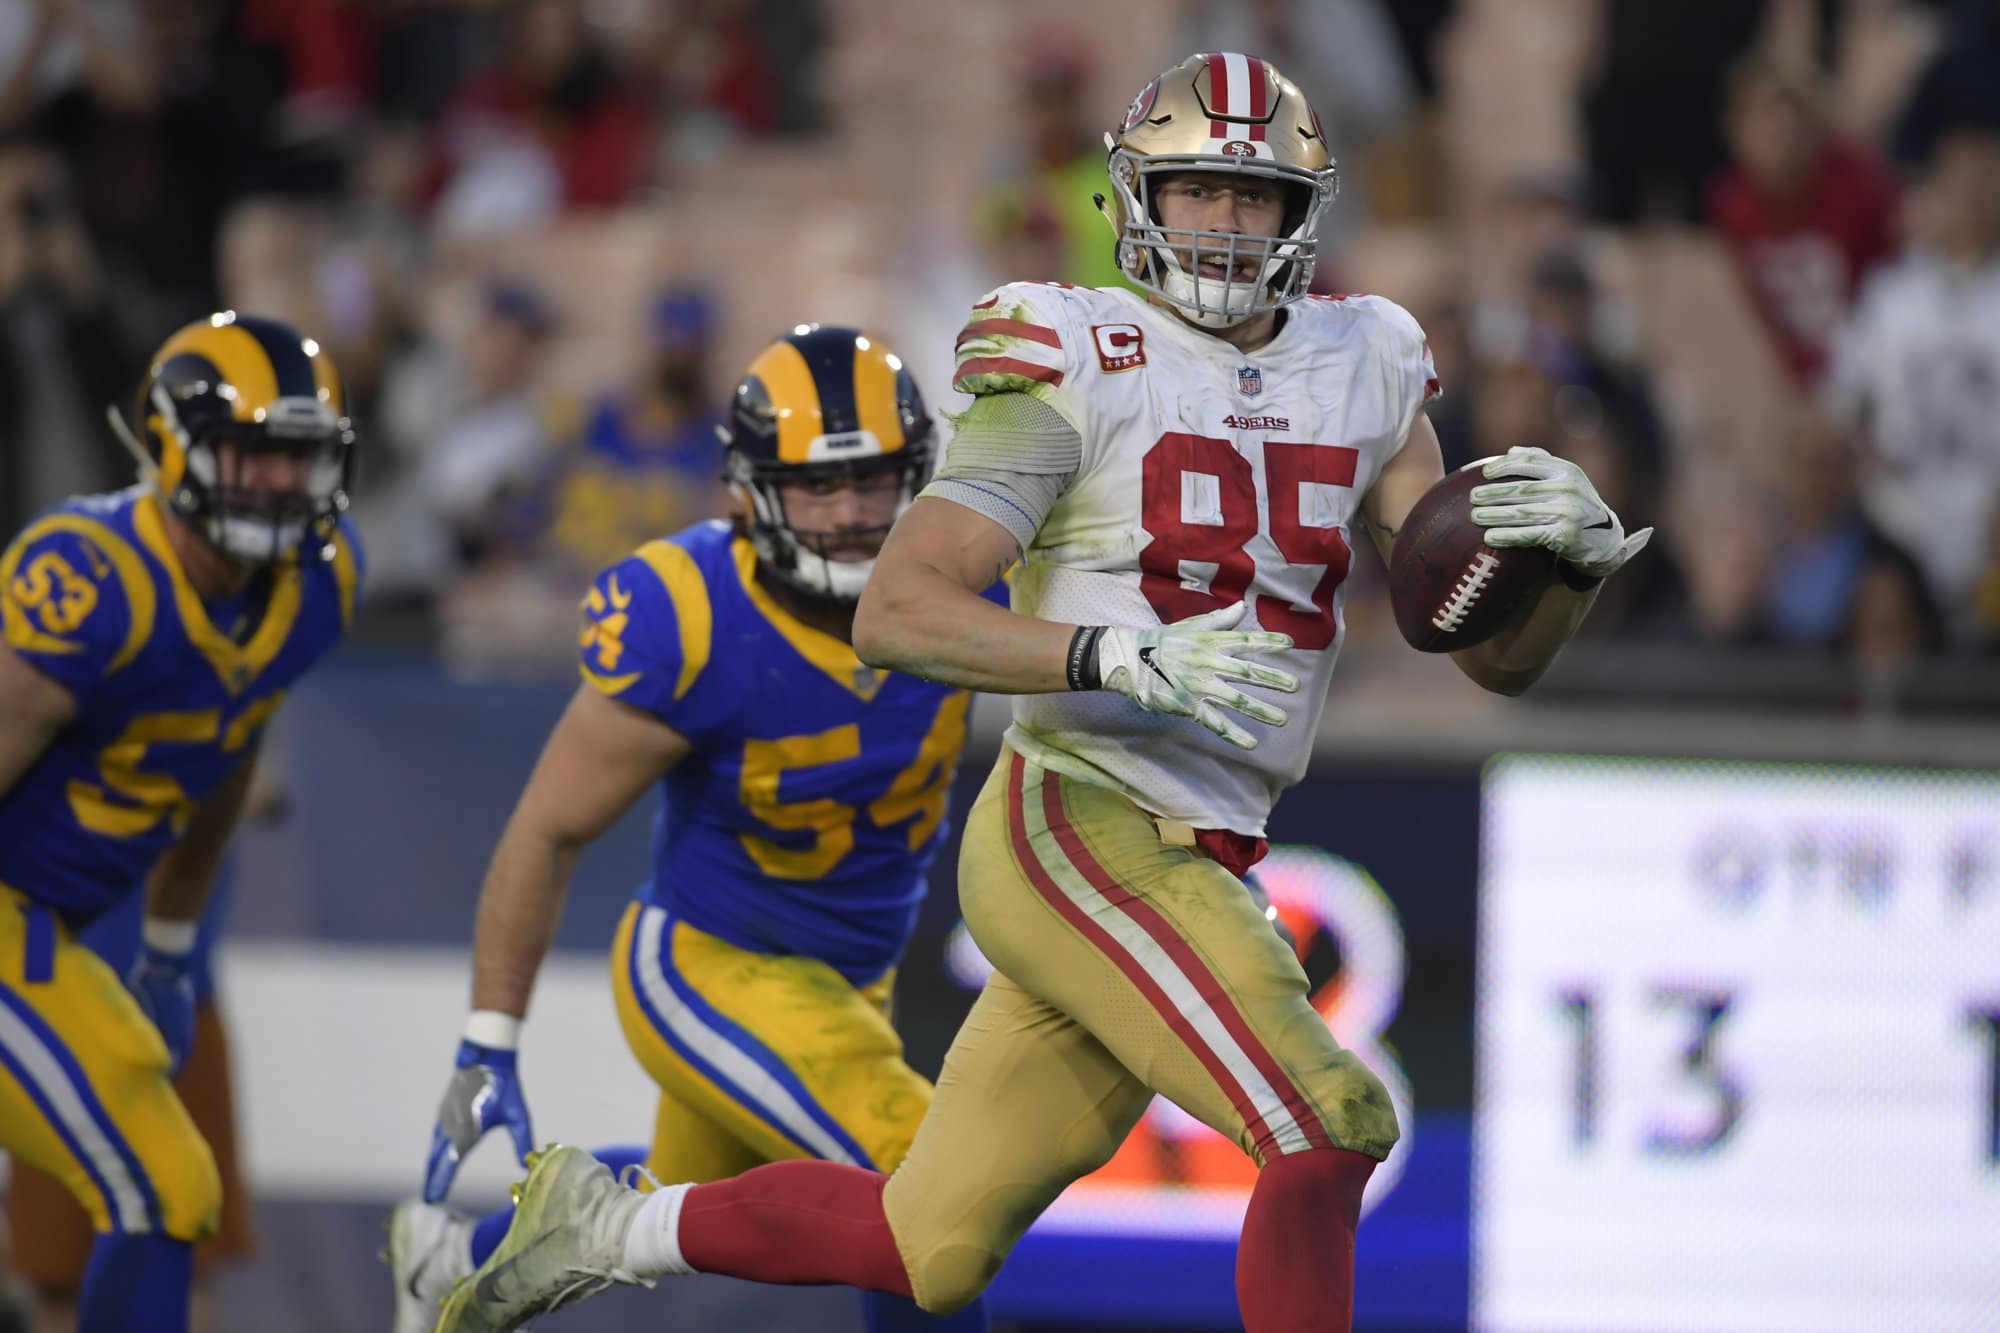 San Francisco 49ers tight end George Kittle scores during the second half in an NFL football game against the Los Angeles Rams Sunday, Dec. 30, 2018, in Los Angeles. (AP Photo/Mark J. Terrill)